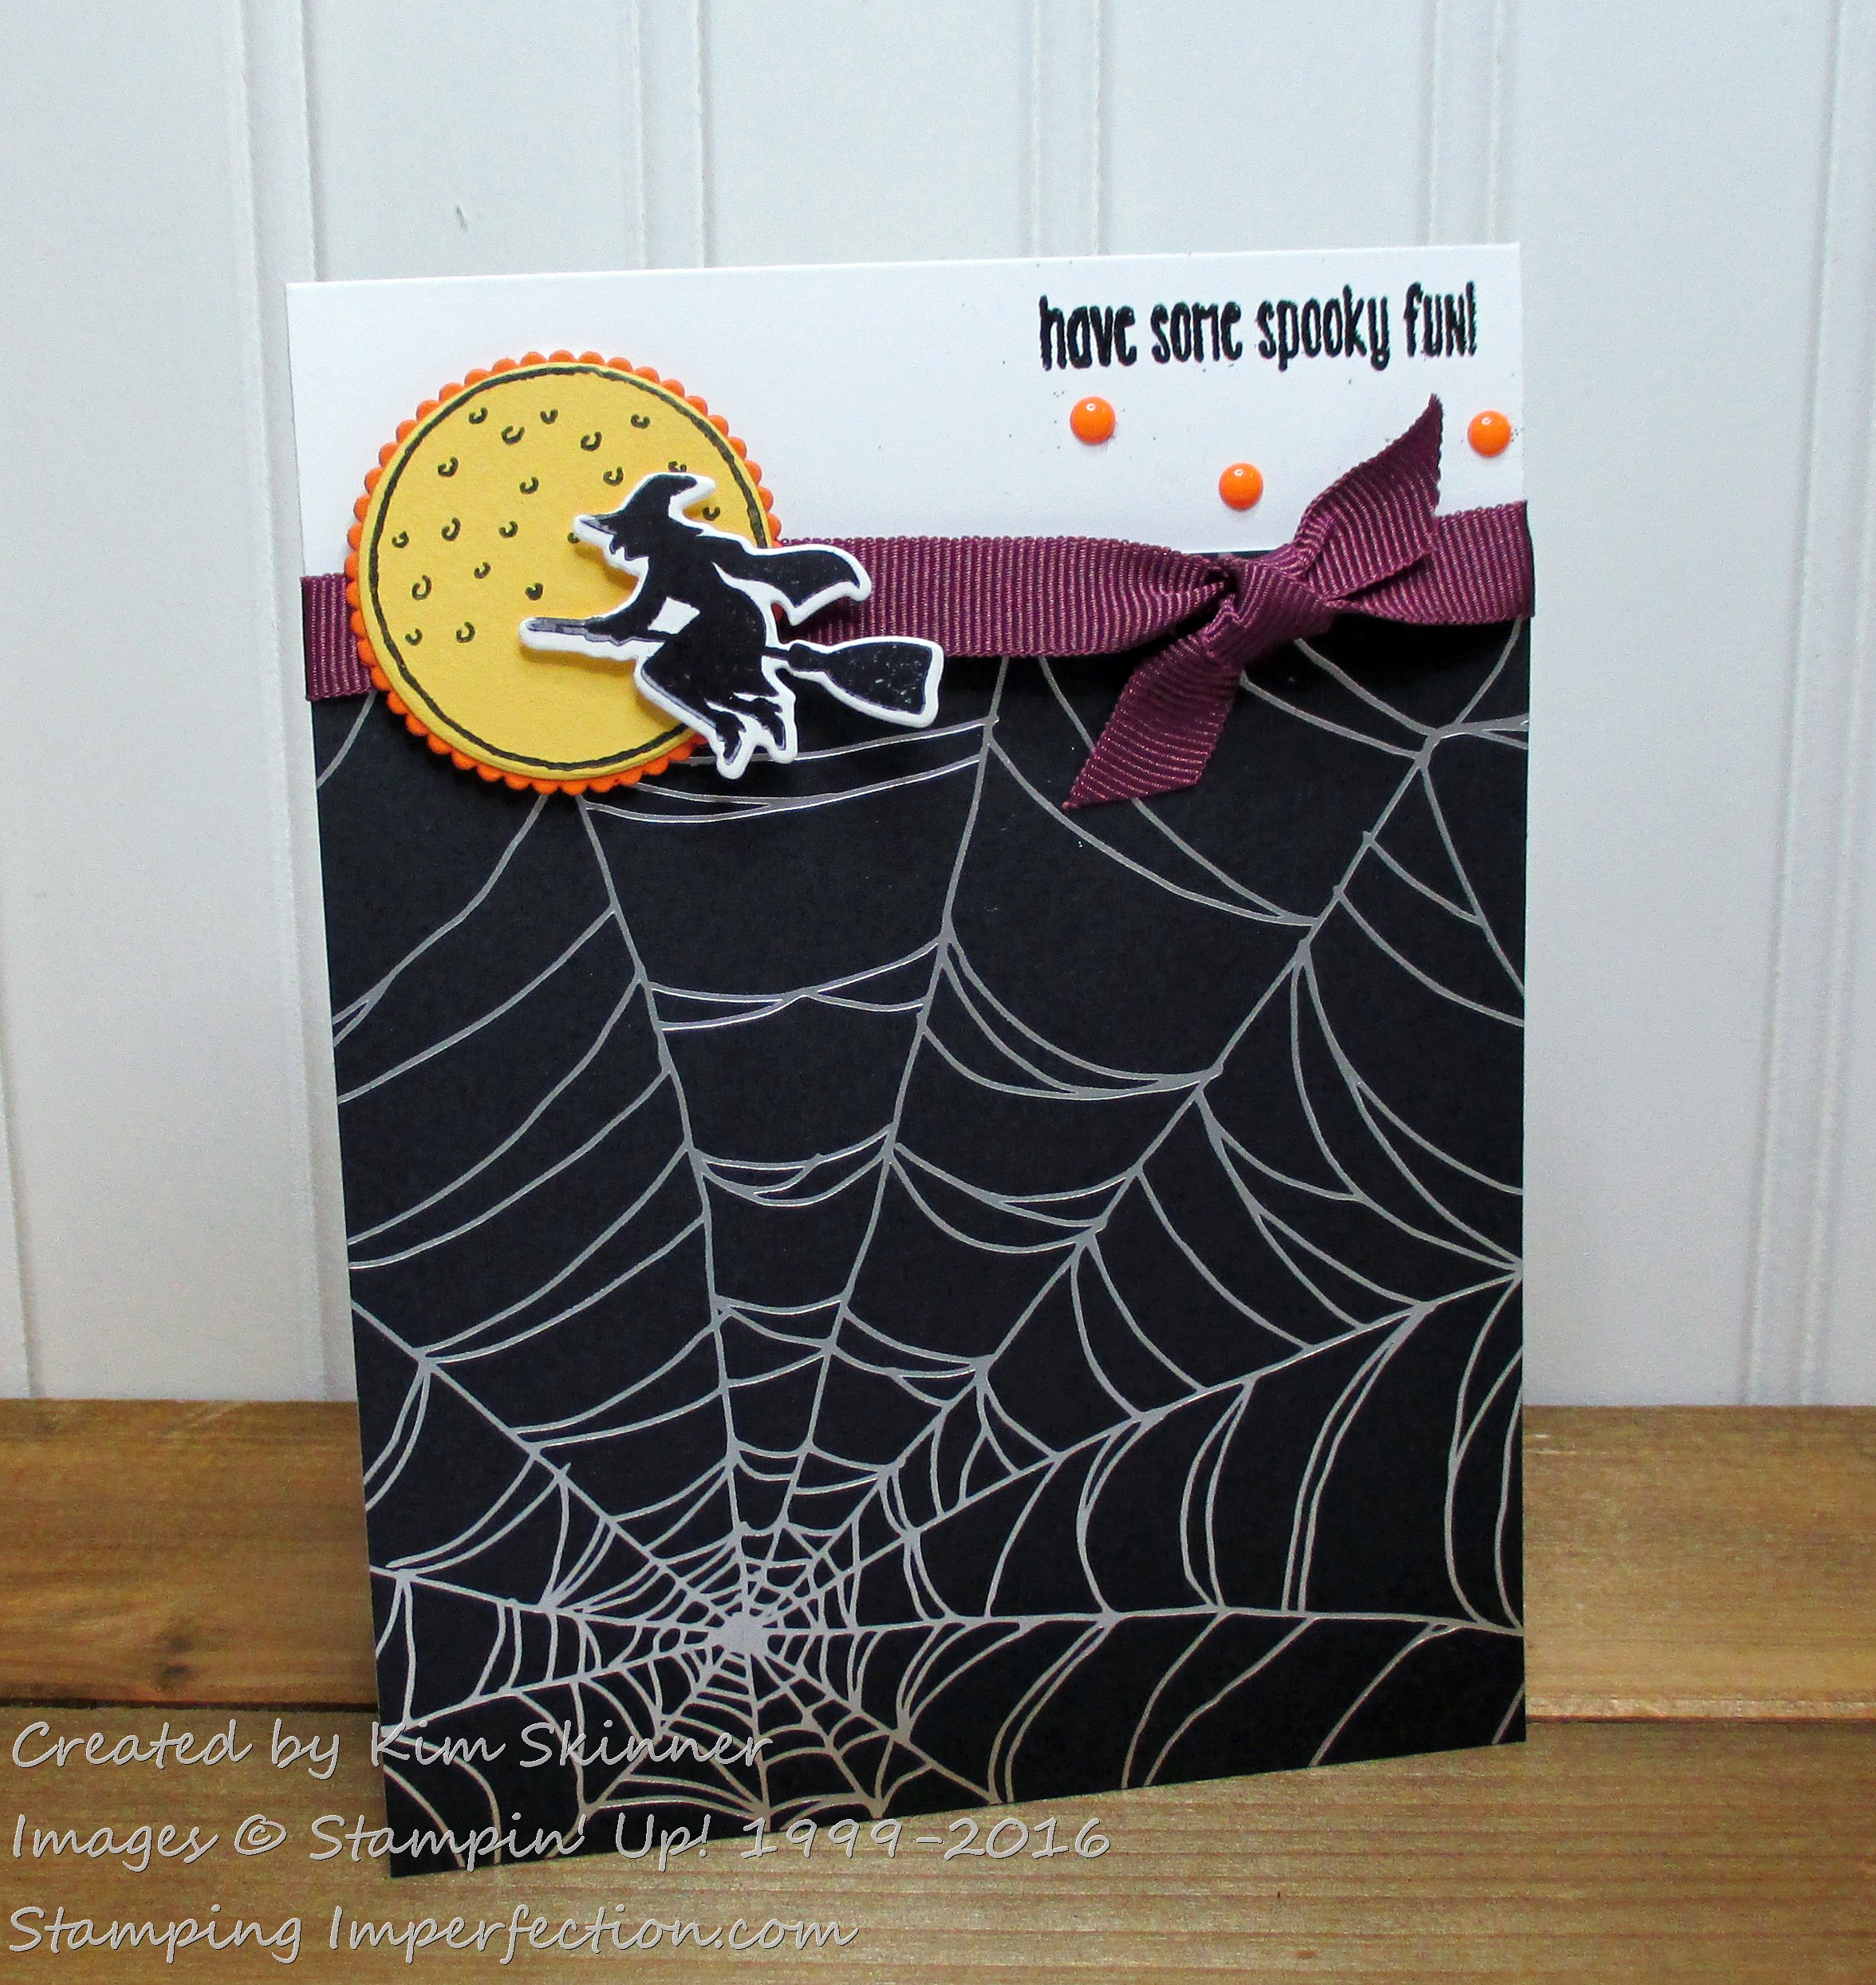 Stamping Imperfection Spooky Fun